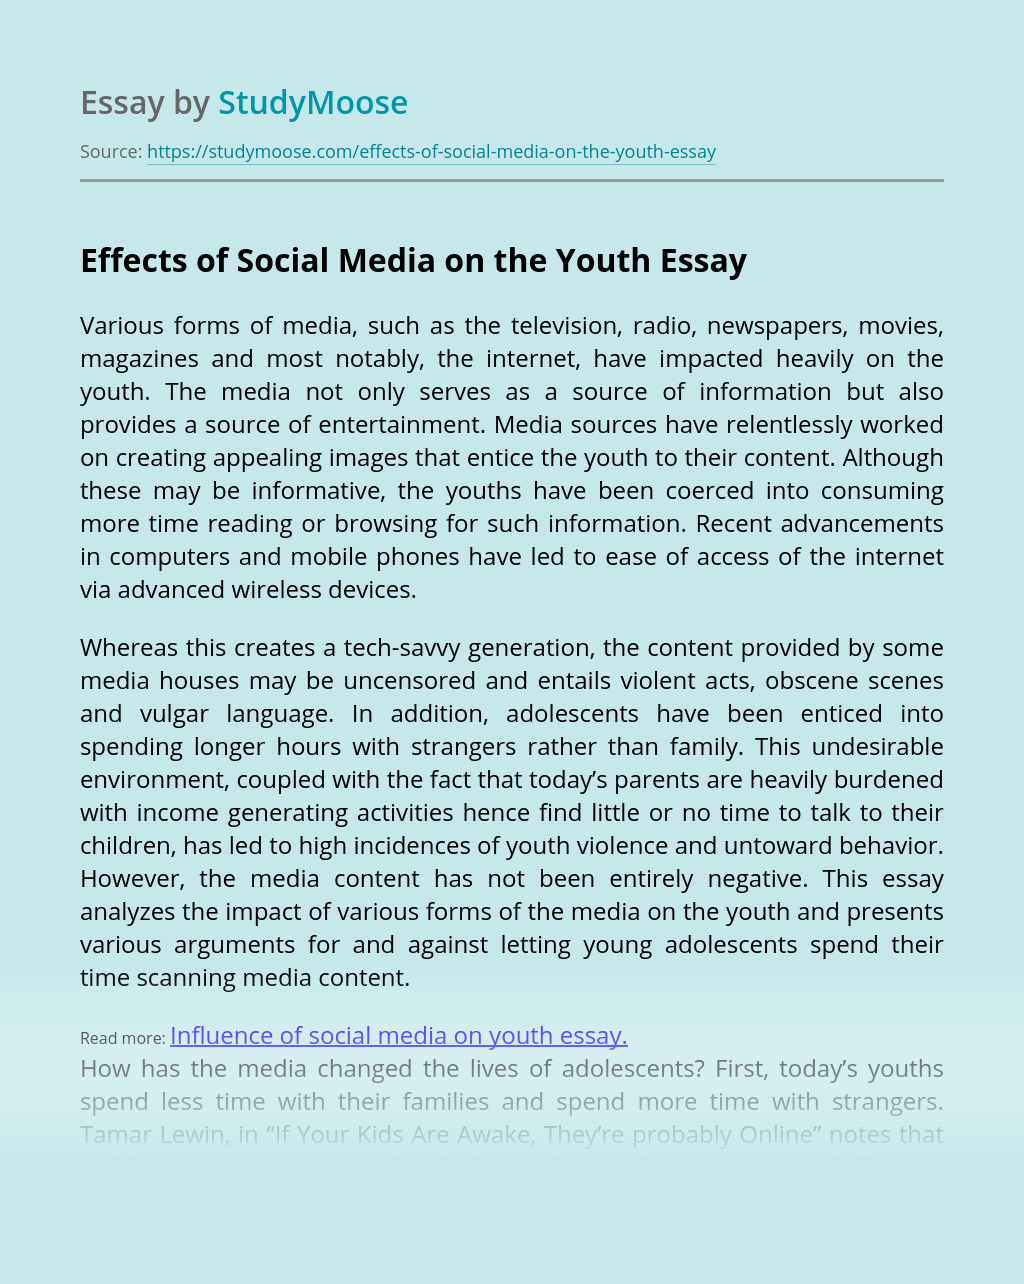 Effects of Social Media on the Youth